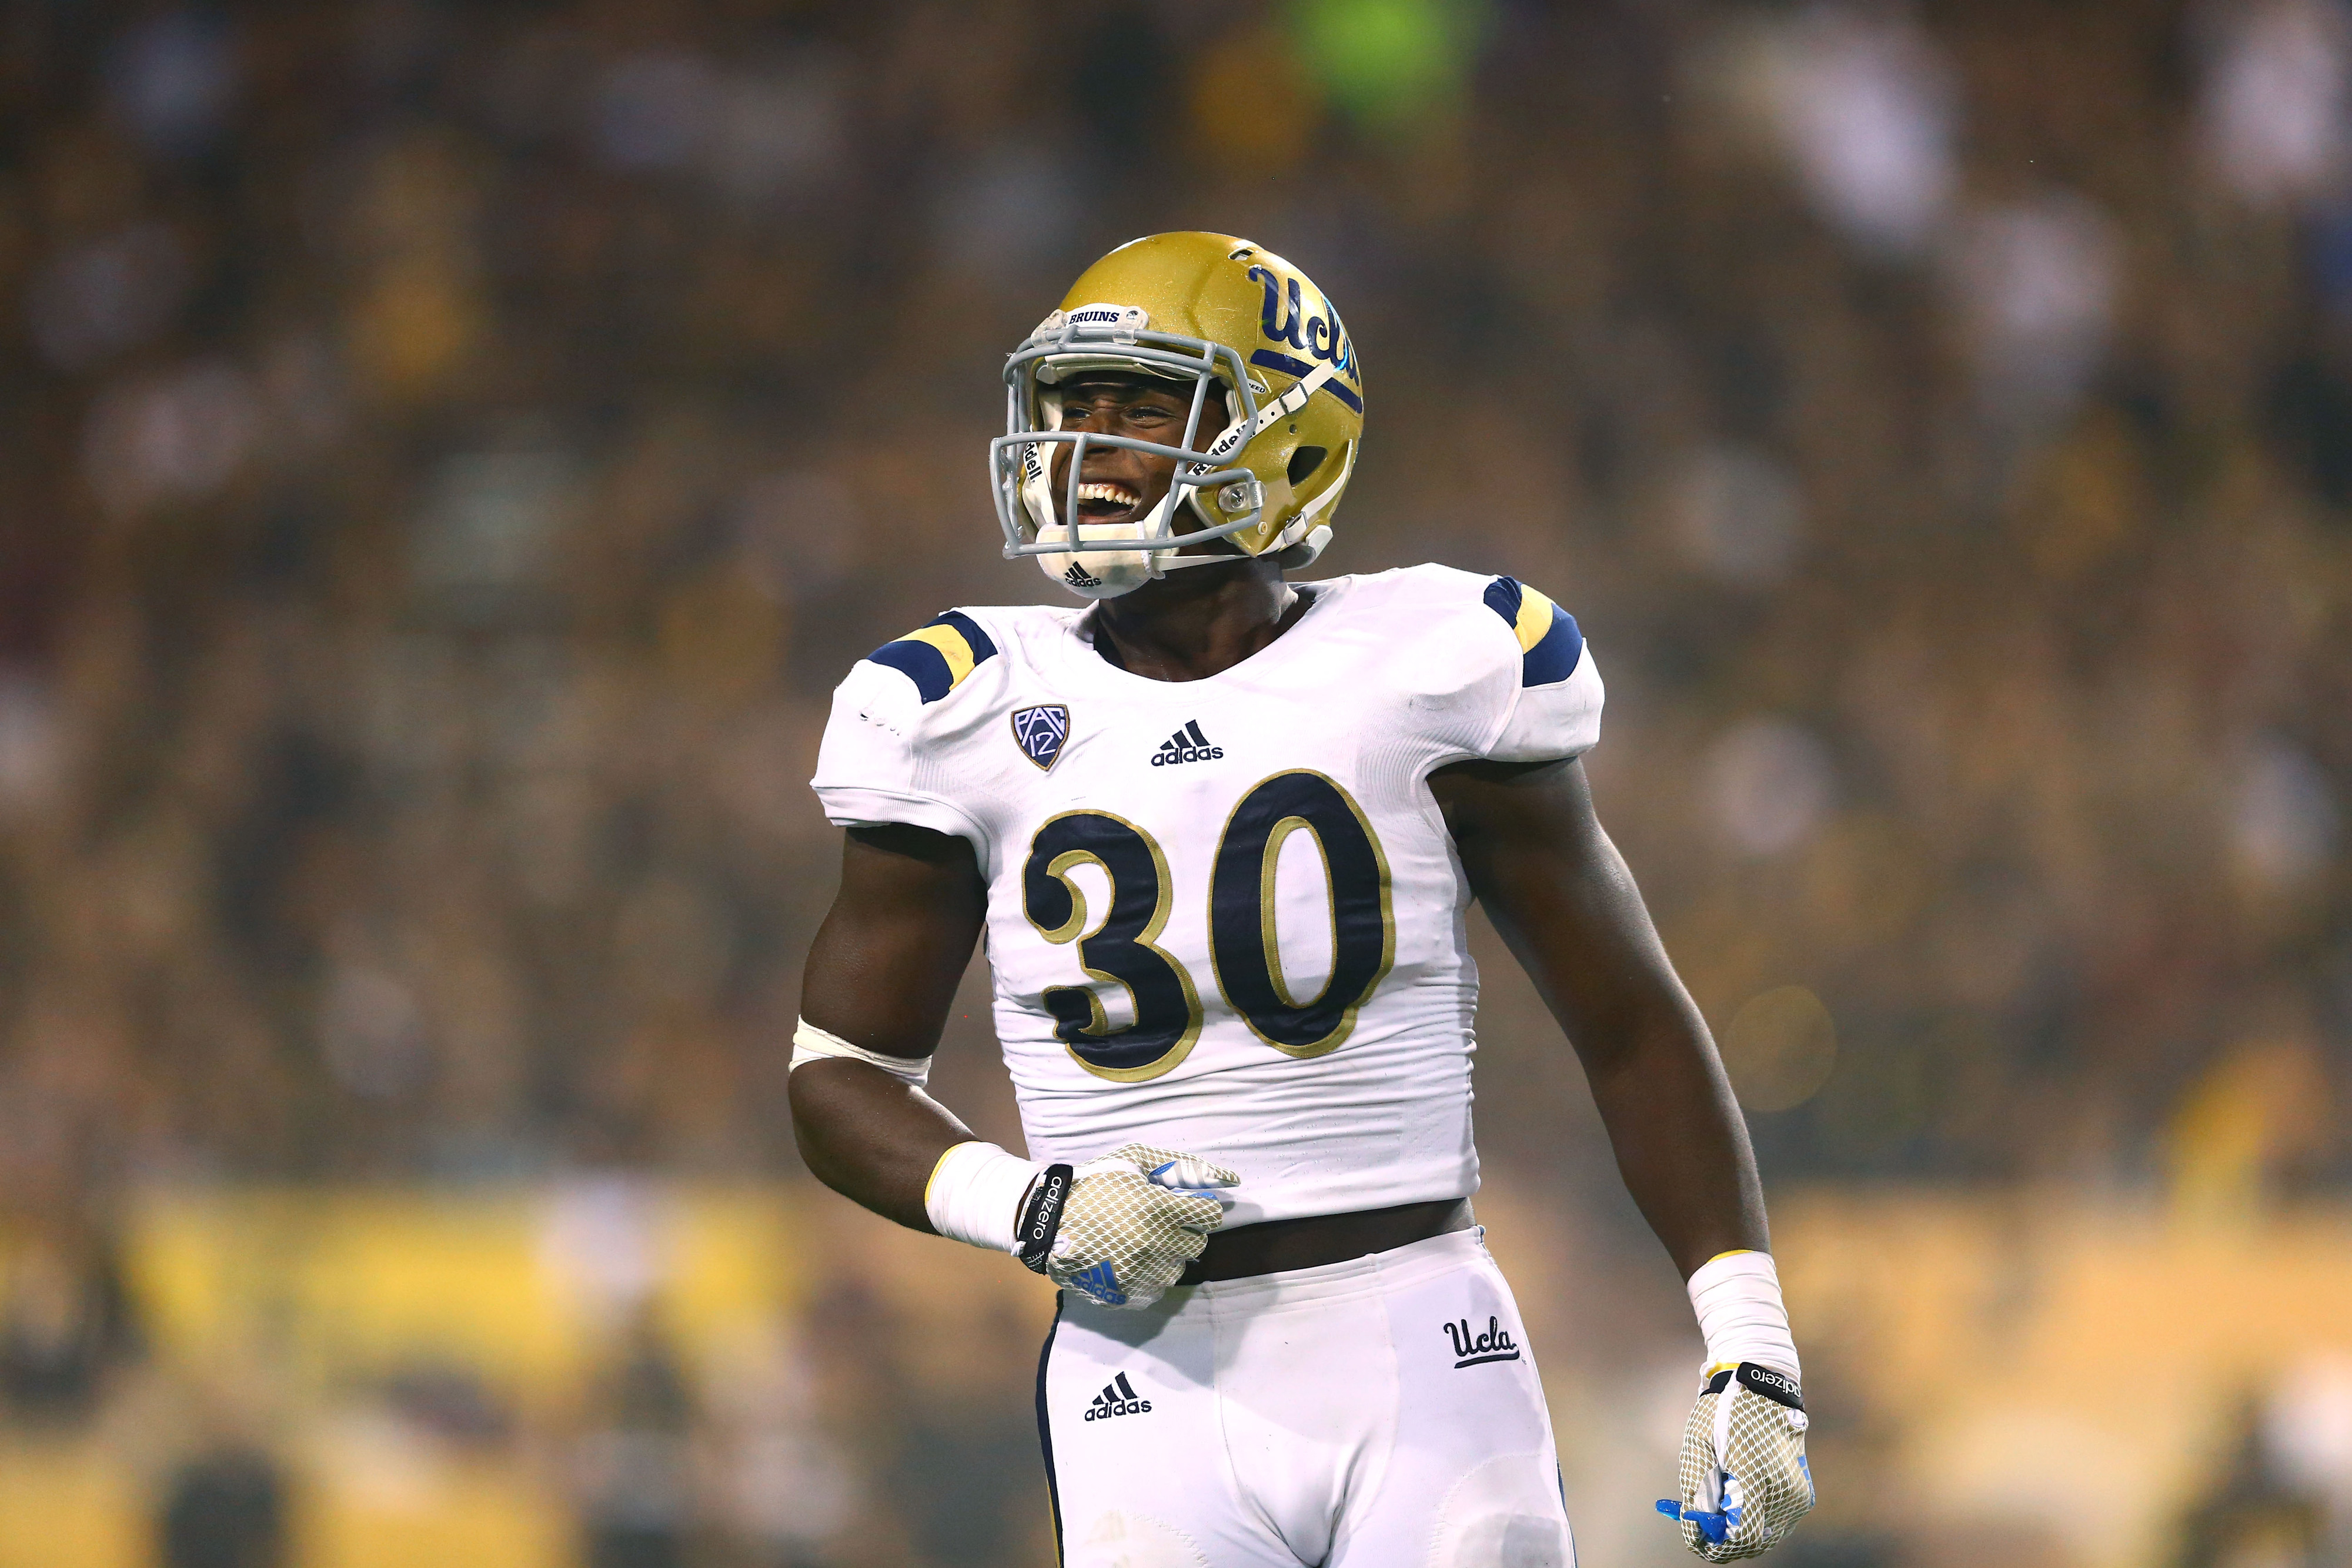 Myles Jack looks to cause problems for the Utes this Saturday.